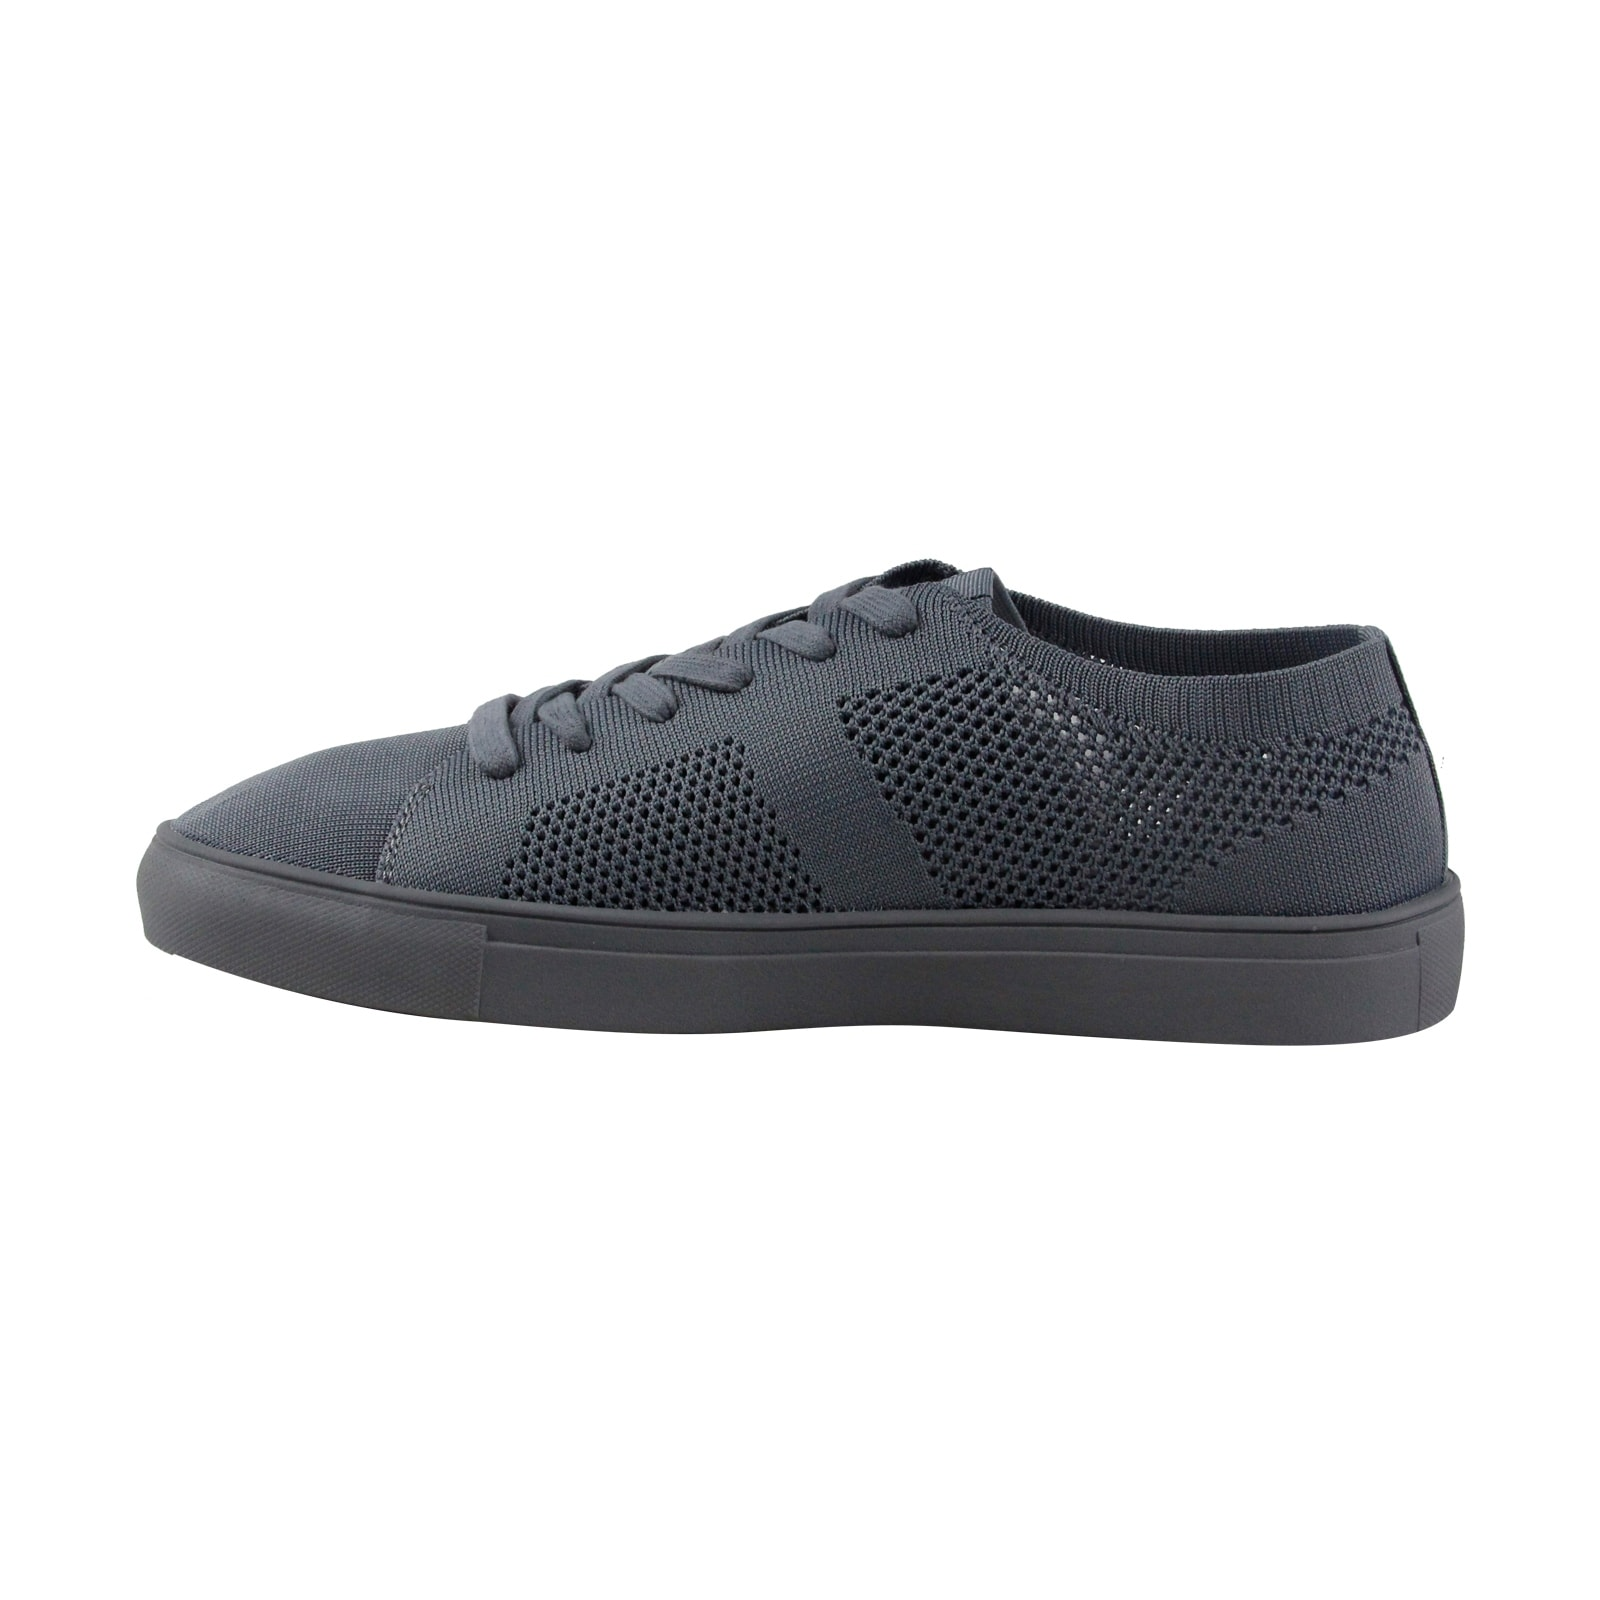 2602716cafe Steve Madden P-Xceel Mens Gray Mesh Lace Up Sneakers Shoes